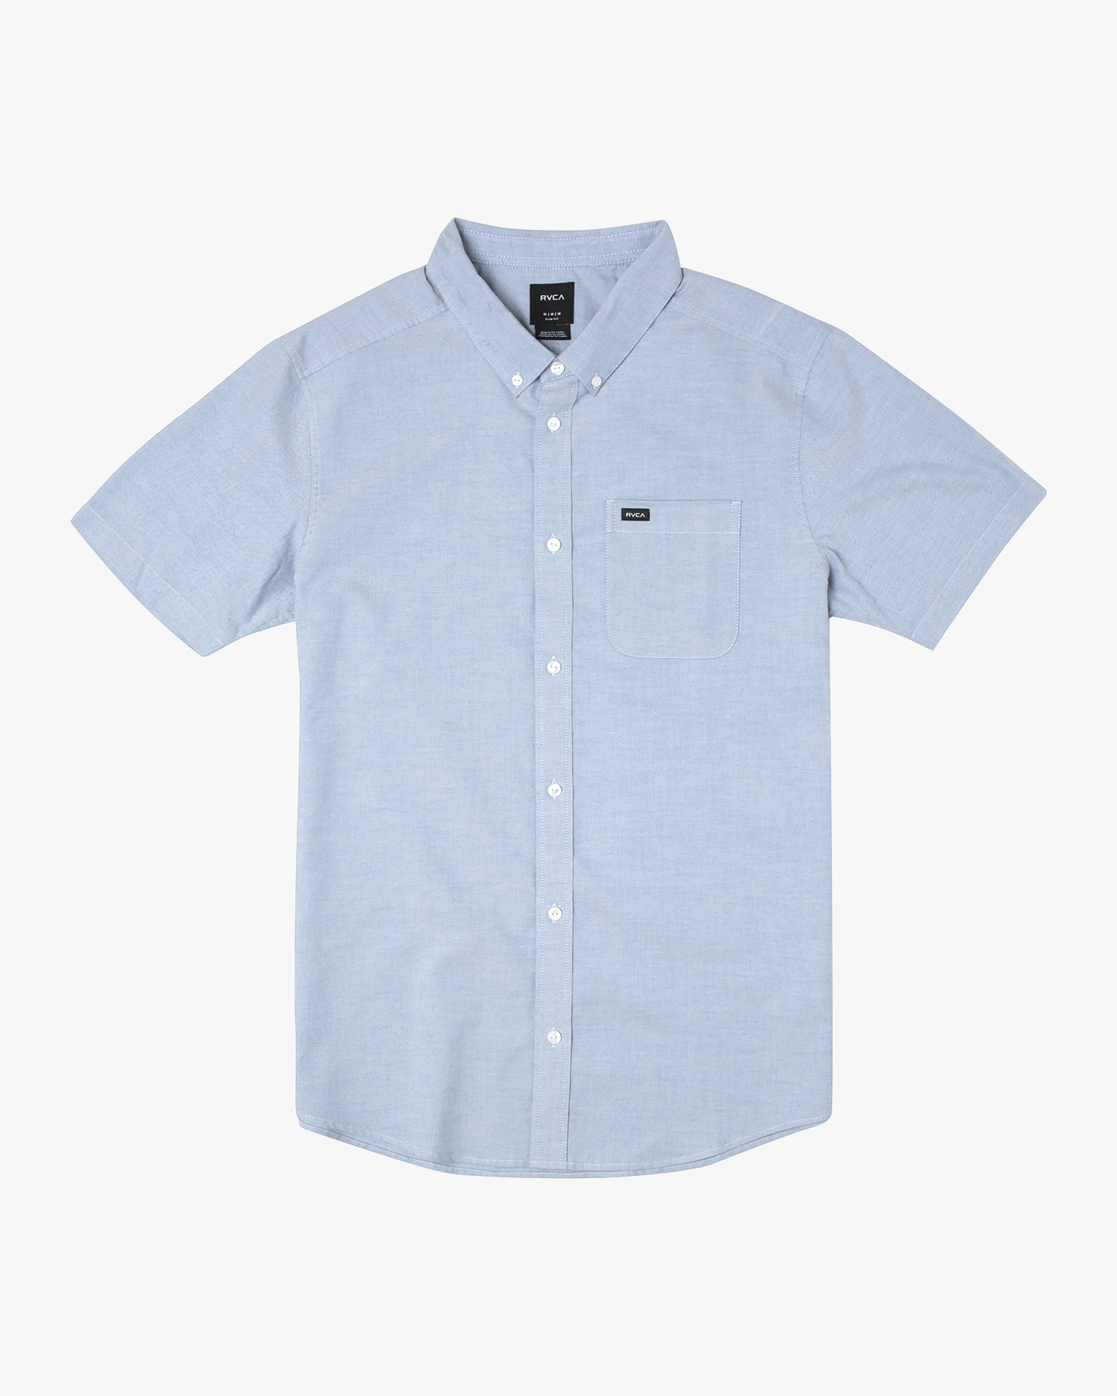 0 BOYS THATLL DO STRETCH SHORT SLEEVE SHIRT Blue B525TRTS RVCA